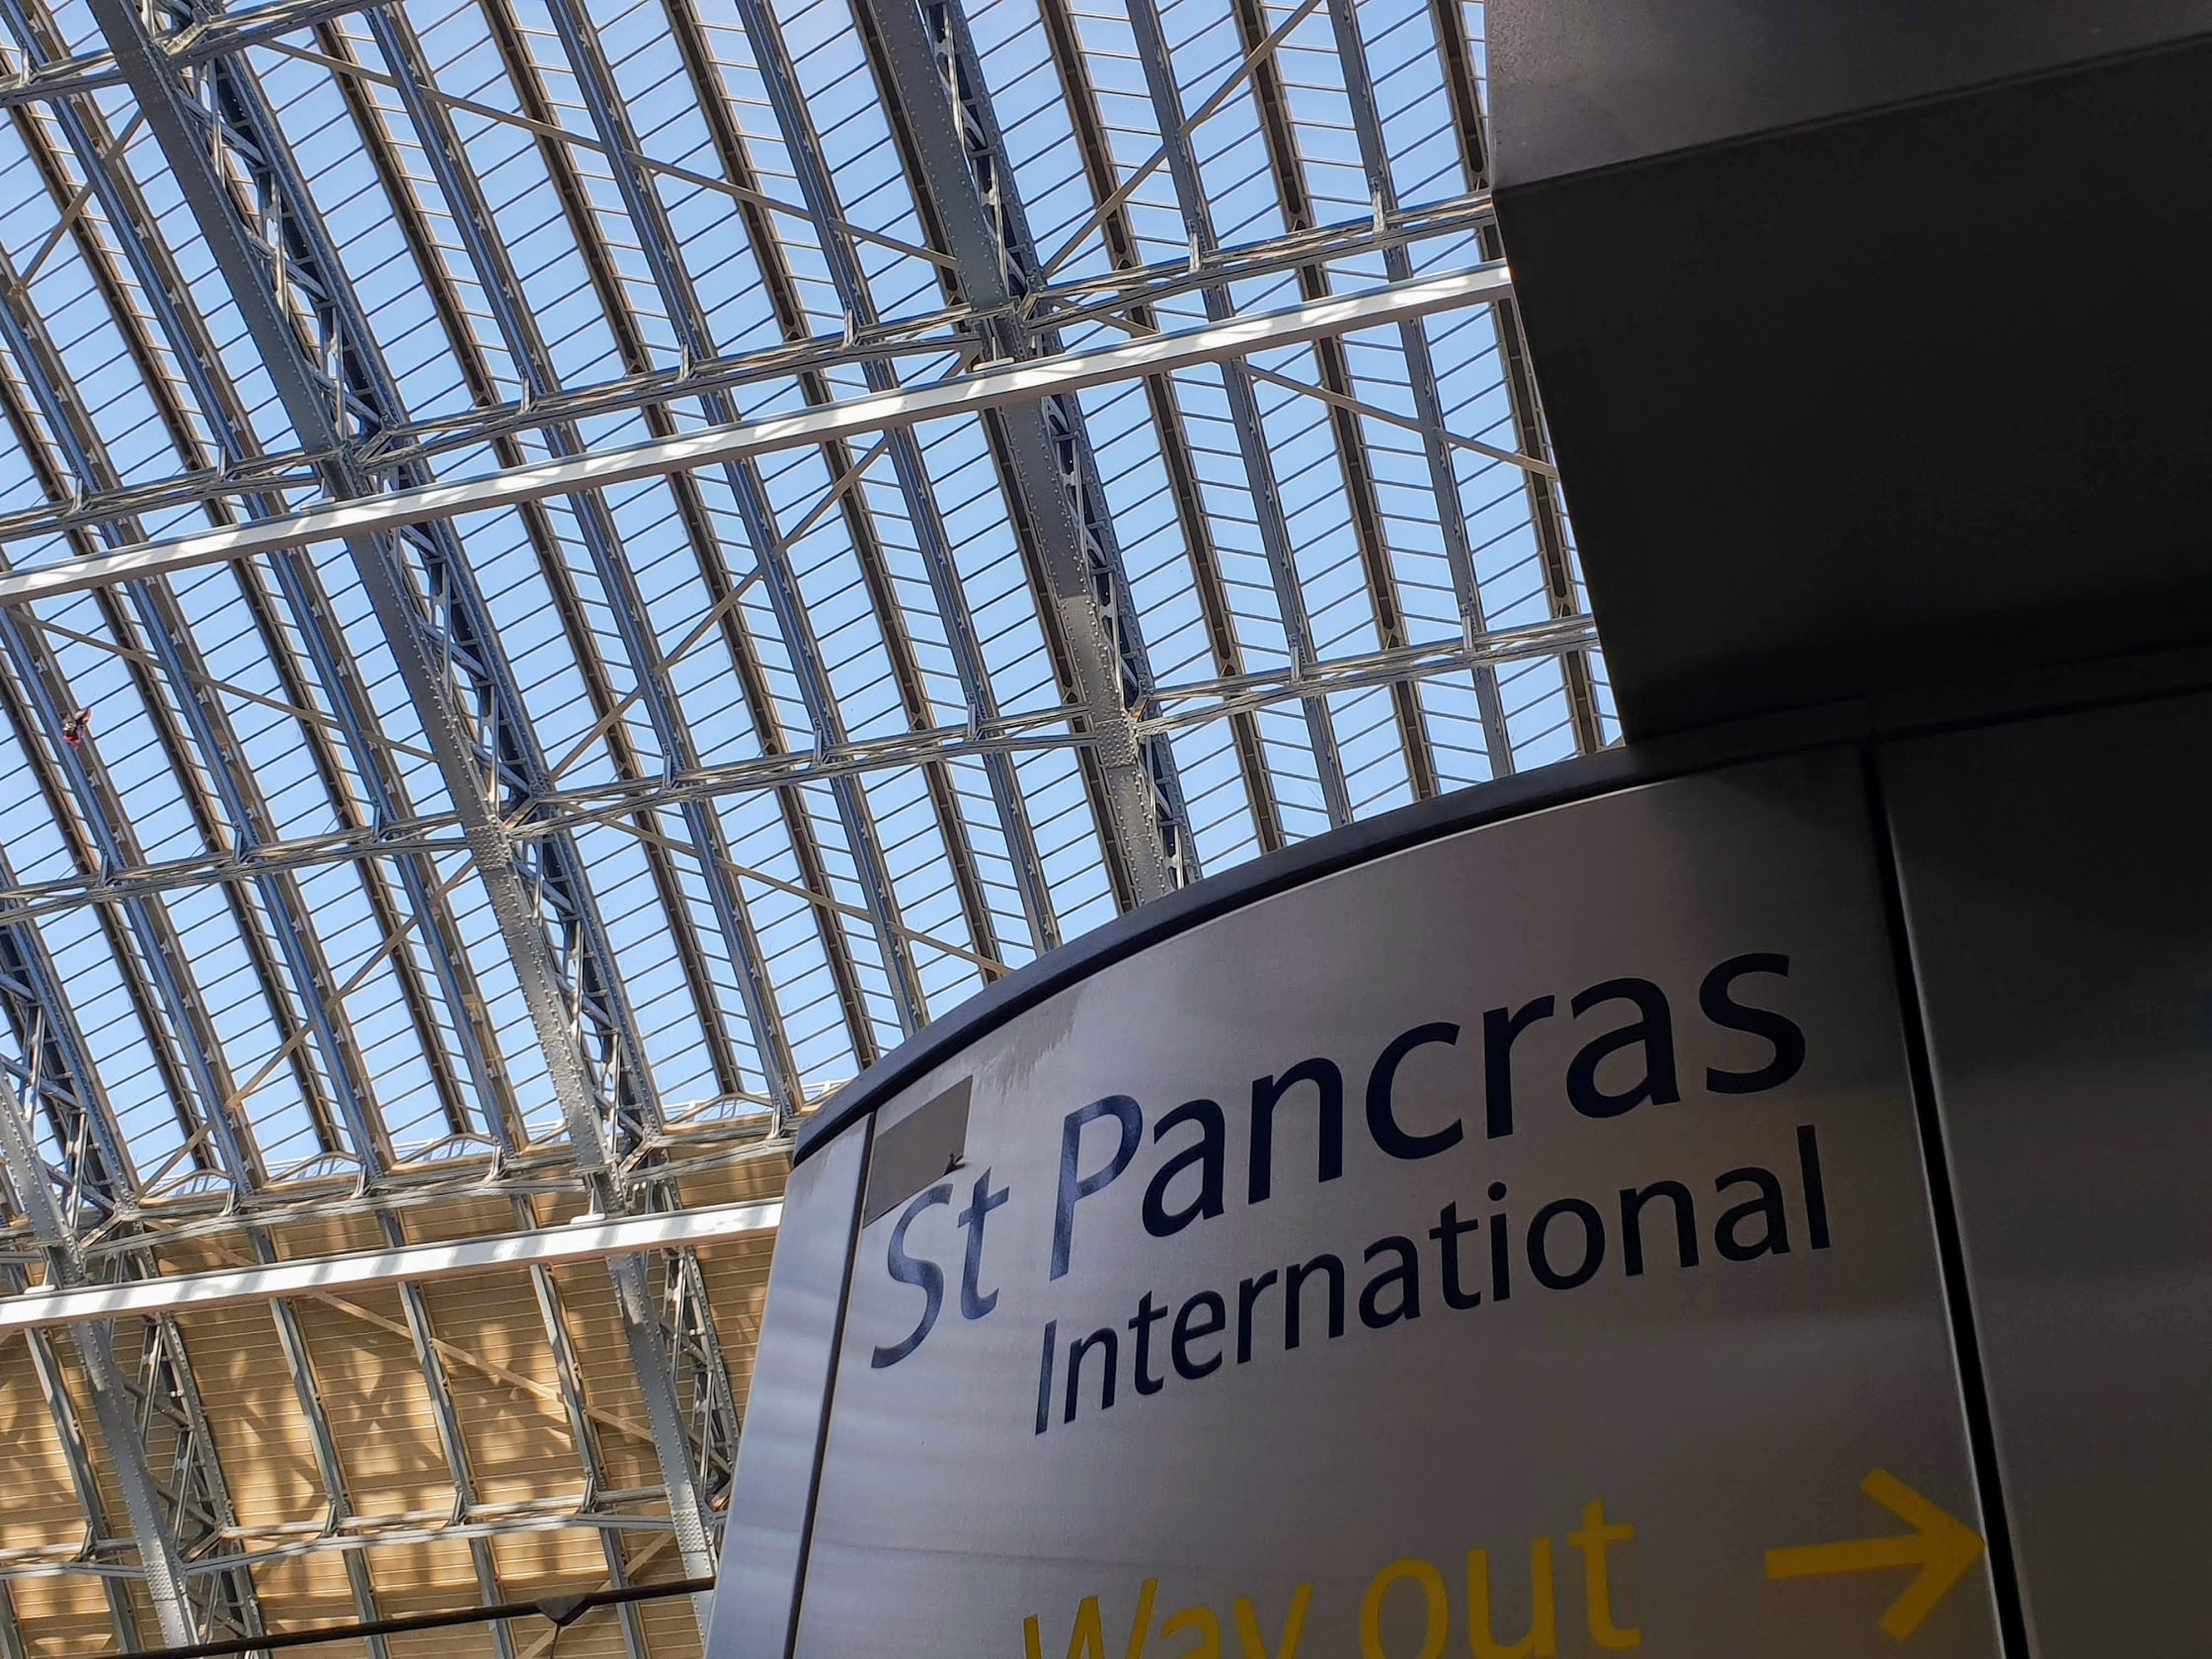 Eurostar terminal at St Pancras London